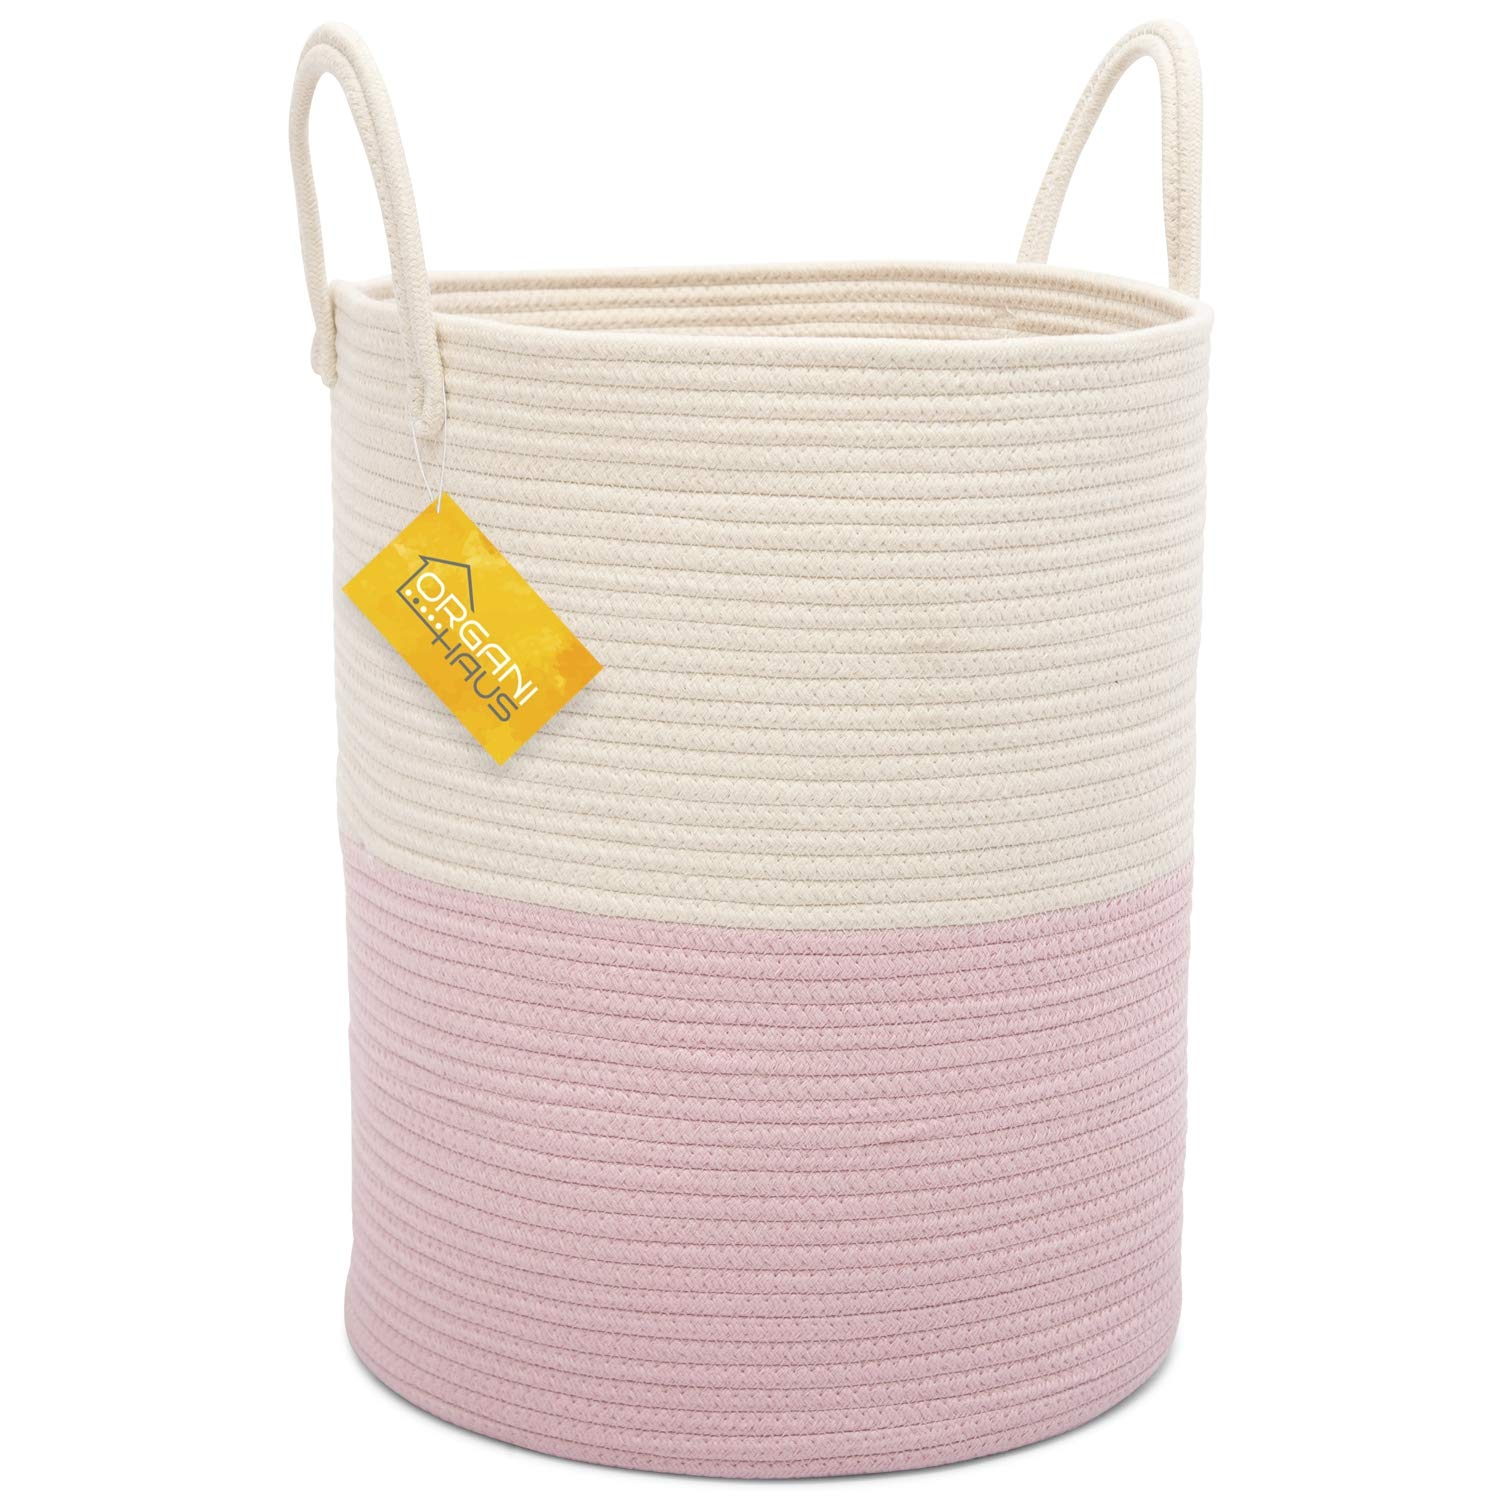 OrganiHaus XL Extra Large Cotton Rope Basket | 15x18'' Nursery Storage Basket with Long Handles | Decorative Clothes Hamper Basket | Tall White and Baby Pink by OrganiHaus